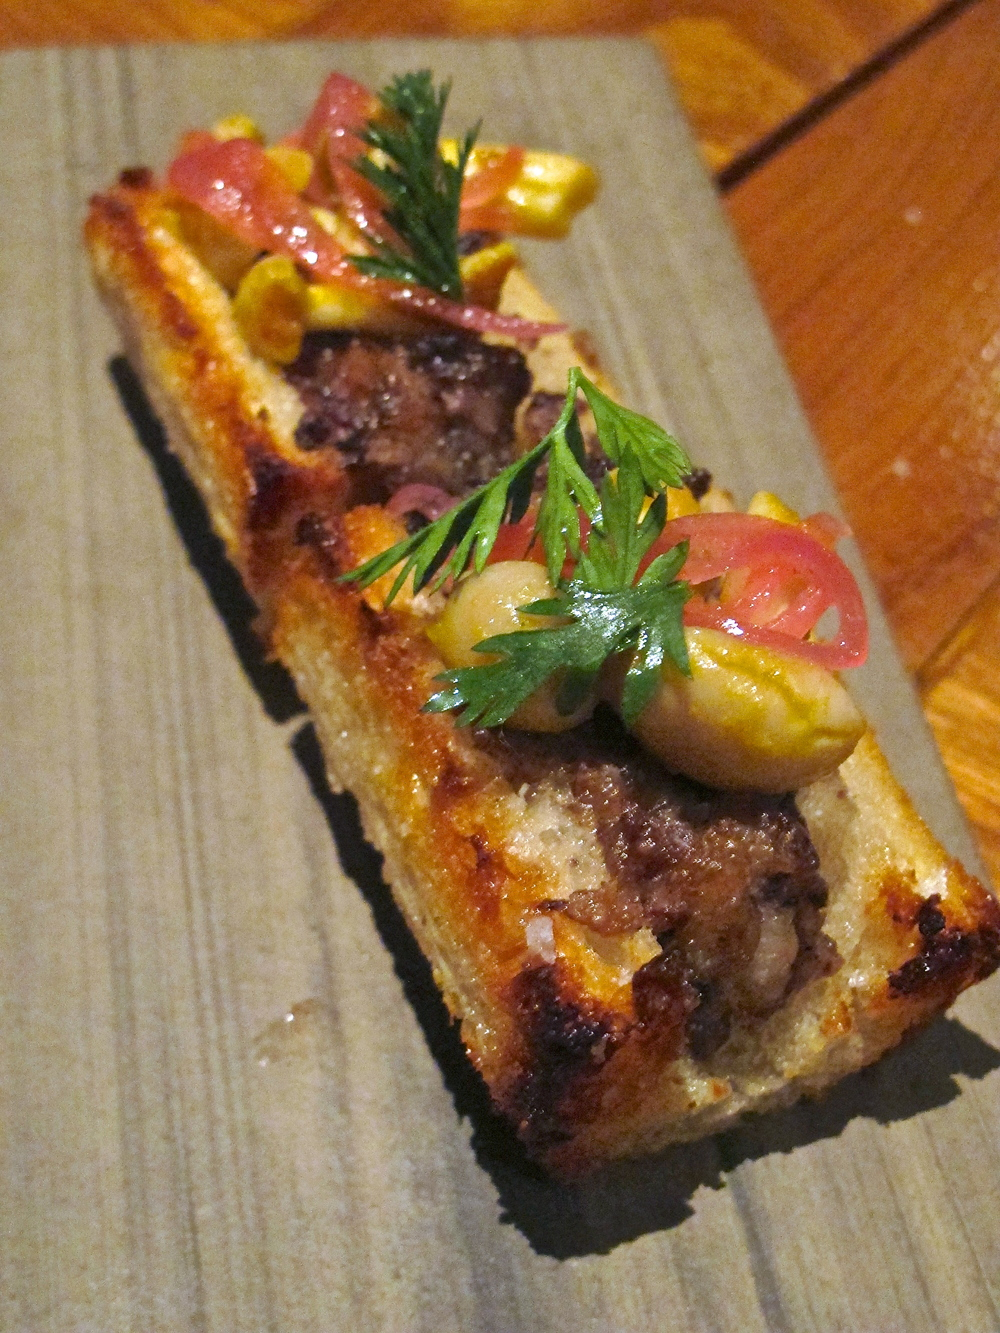 Scratch Bar's roasted bone marrow 'n sourdough